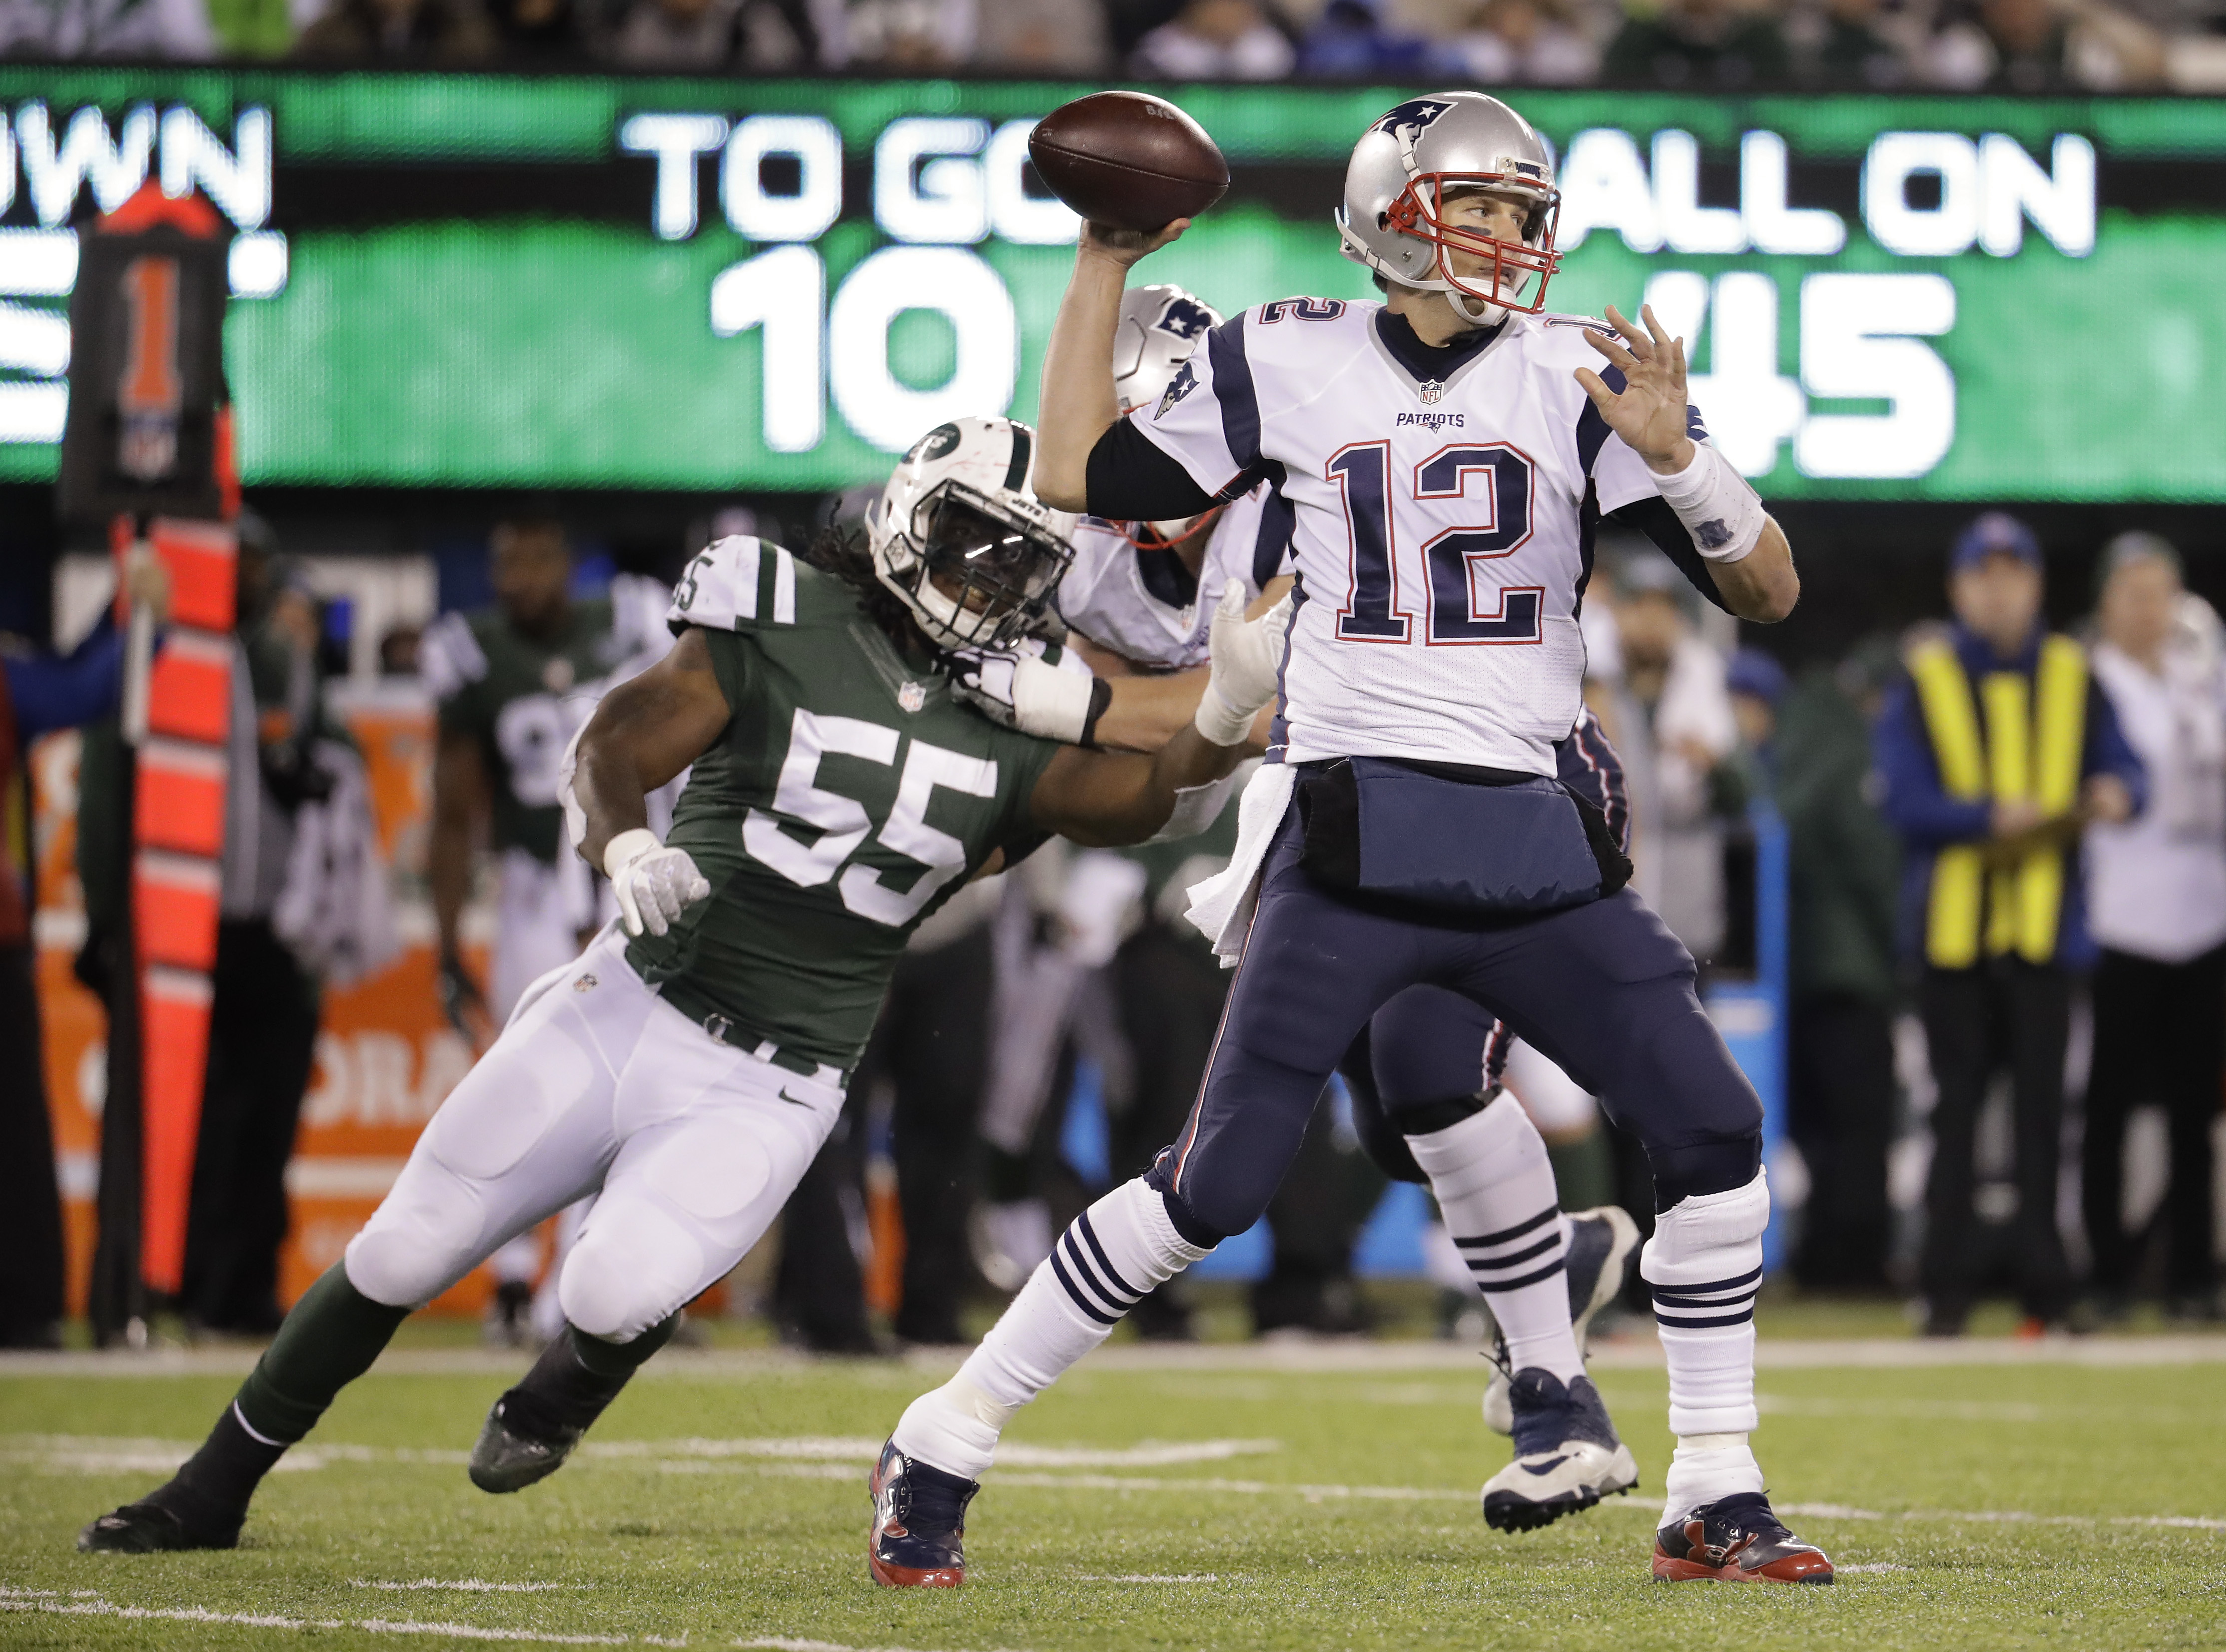 New England Patriots quarterback Tom Brady (12) throws under pressure from New York Jets outside linebacker Lorenzo Mauldin (55) during the third quarter of an NFL football game, Sunday, Nov. 27, 2016, in East Rutherford, N.J. (AP Photo/Julio Cortez)